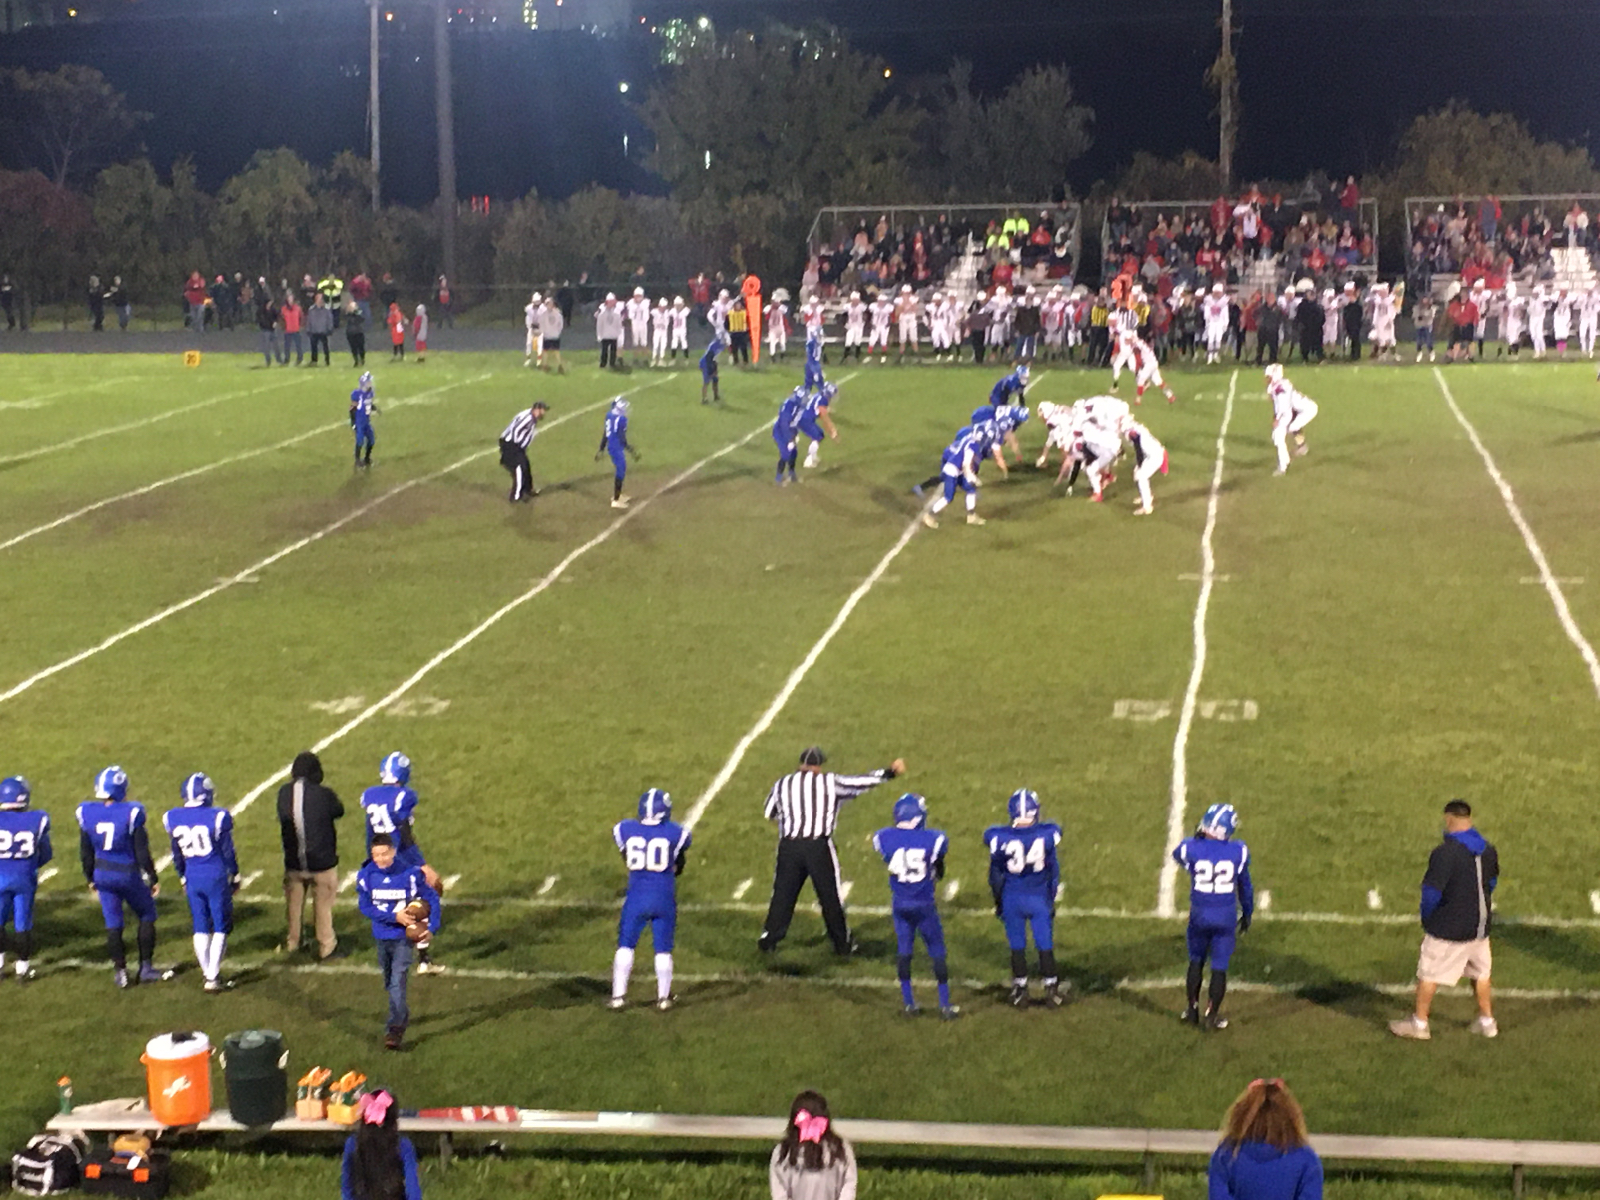 Sectional FB update: Knox up 56-0 10 min to play #nwihssports #nwipreps